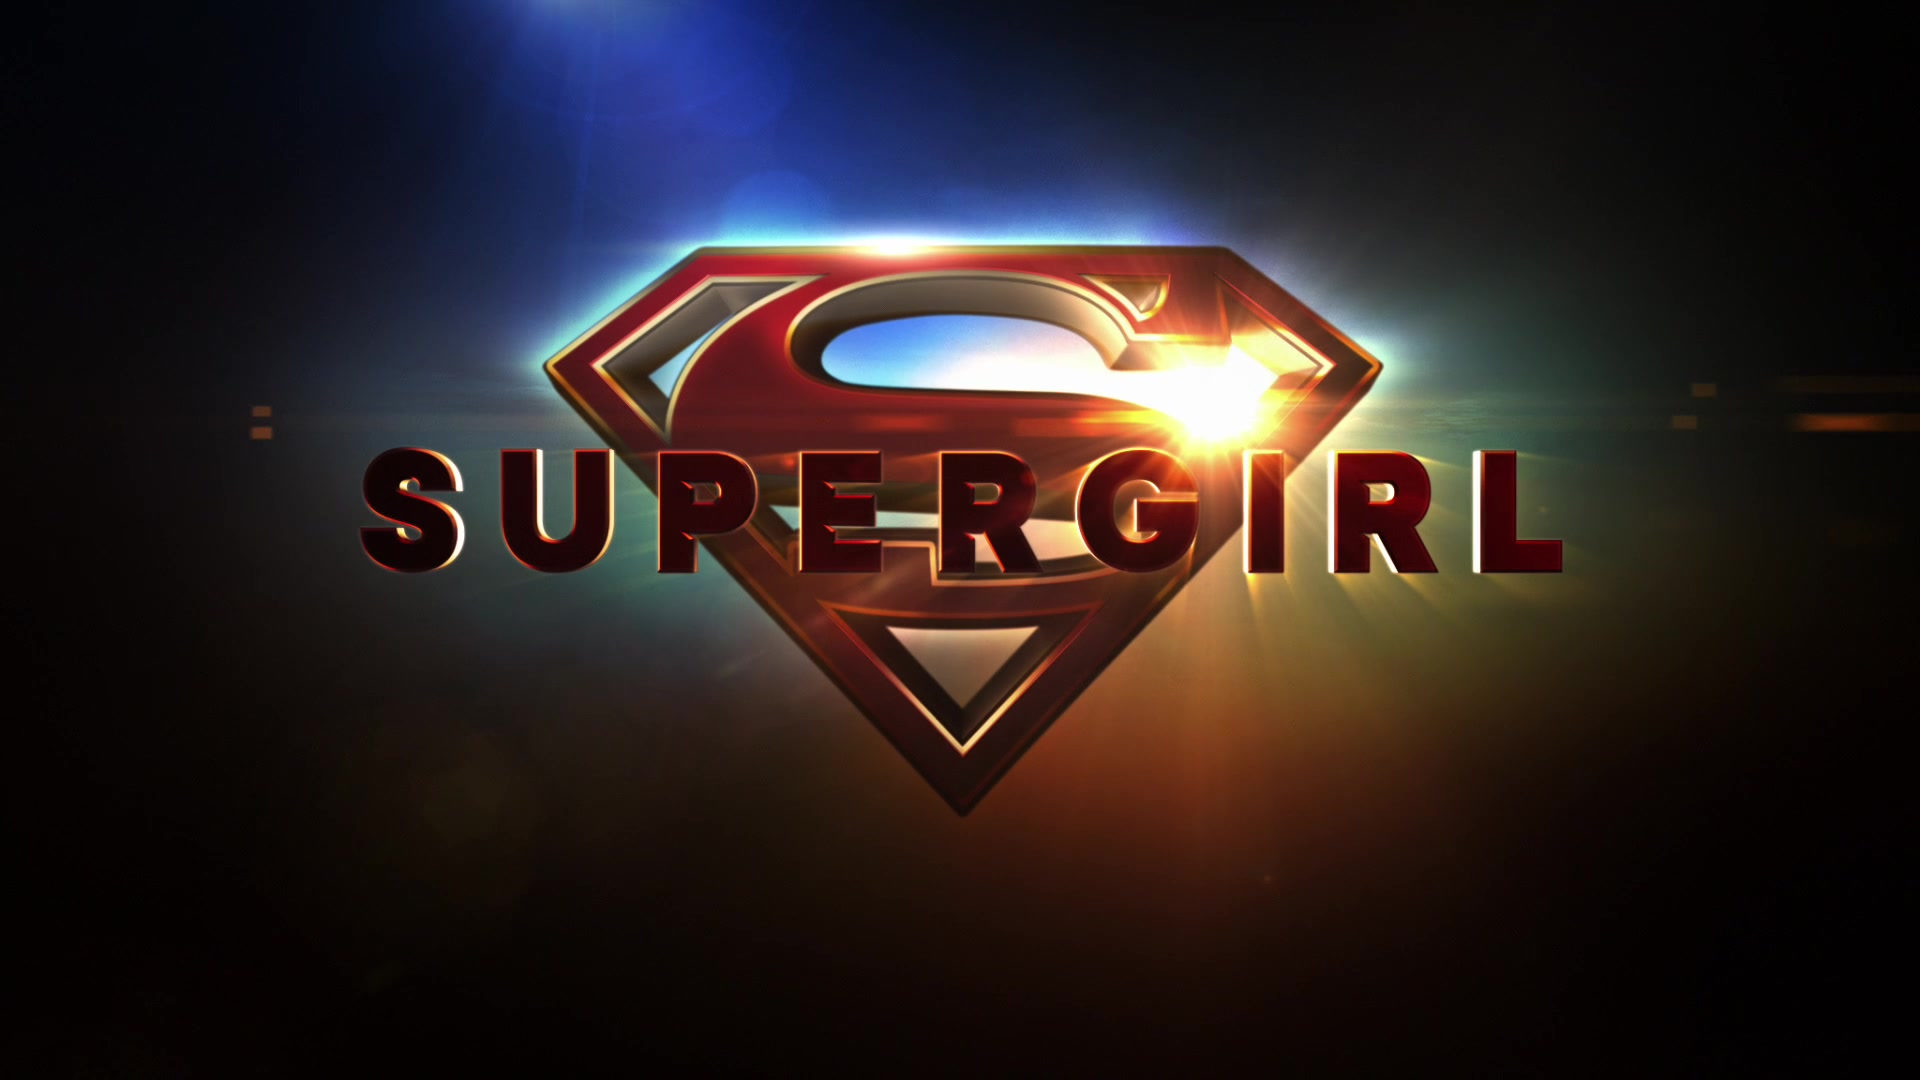 Supergirl (TV Series) Episode: It's a Super Life